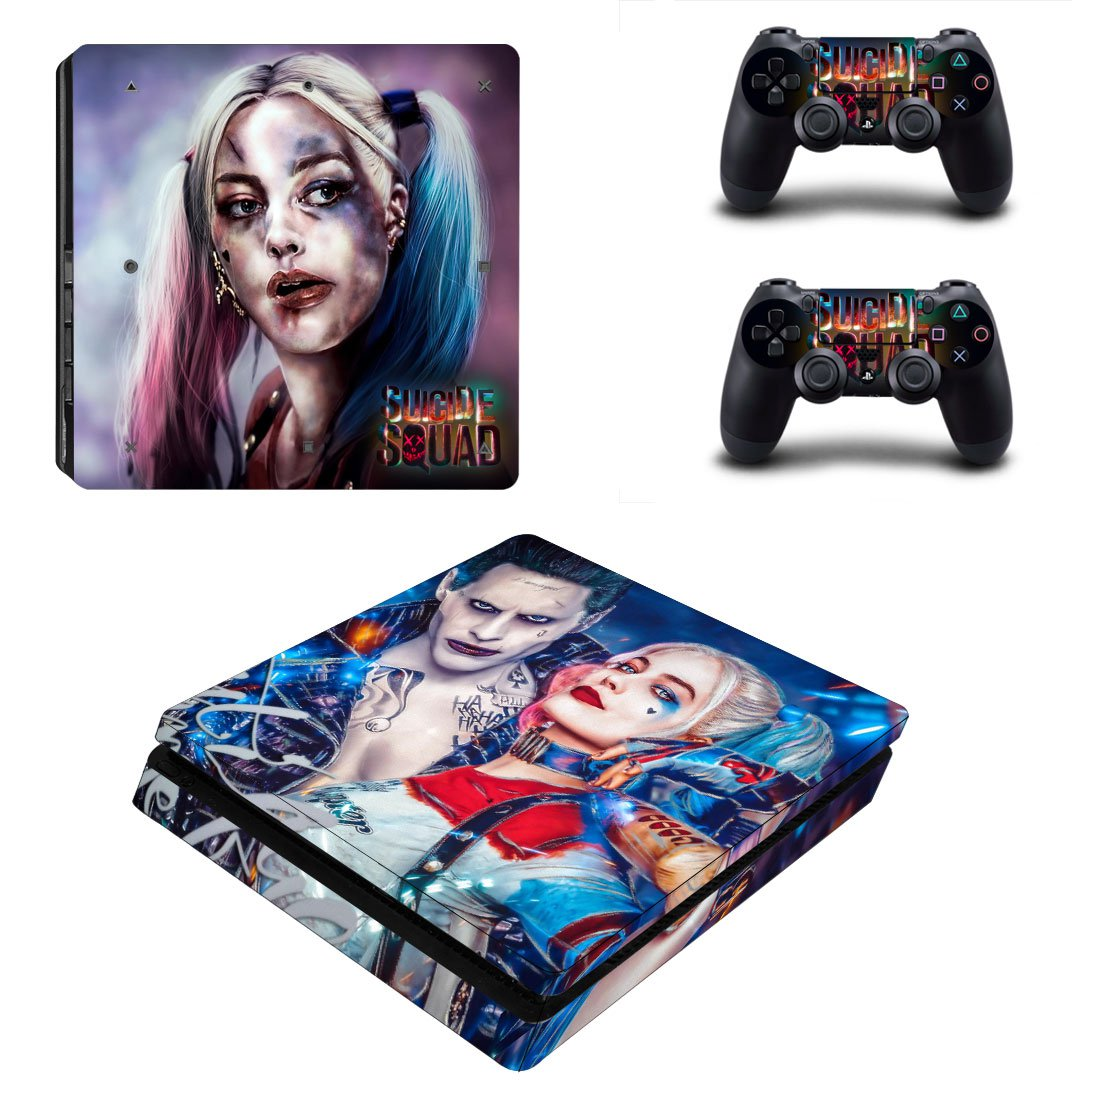 Suicide Squad Harley Quinn PS4 Slim Skin Sticker Decals PS4 Console And Controllers Protect Your PS4